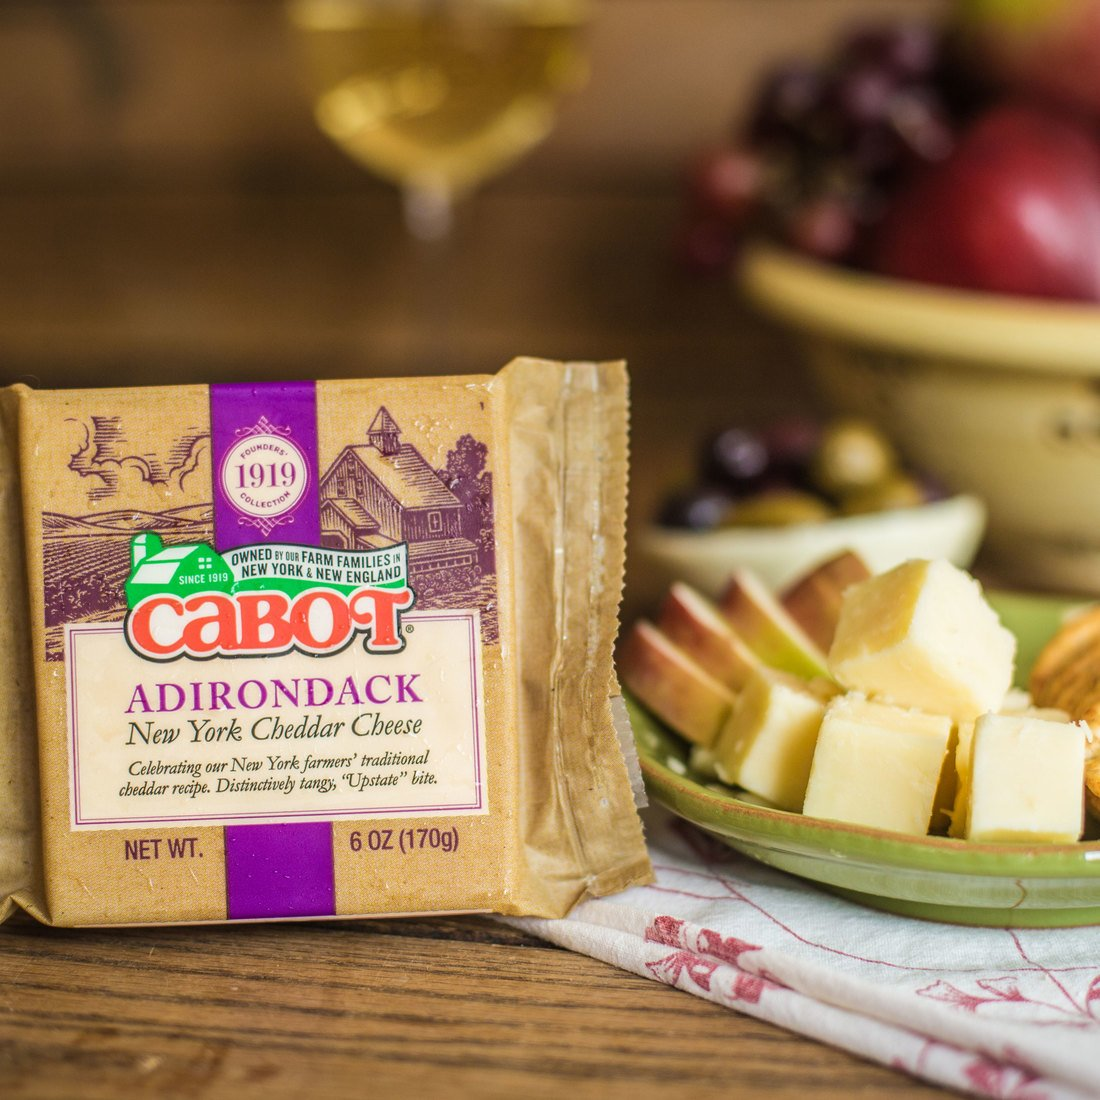 Founders' 1919 Collection: Adirondack Cheddar Cheese